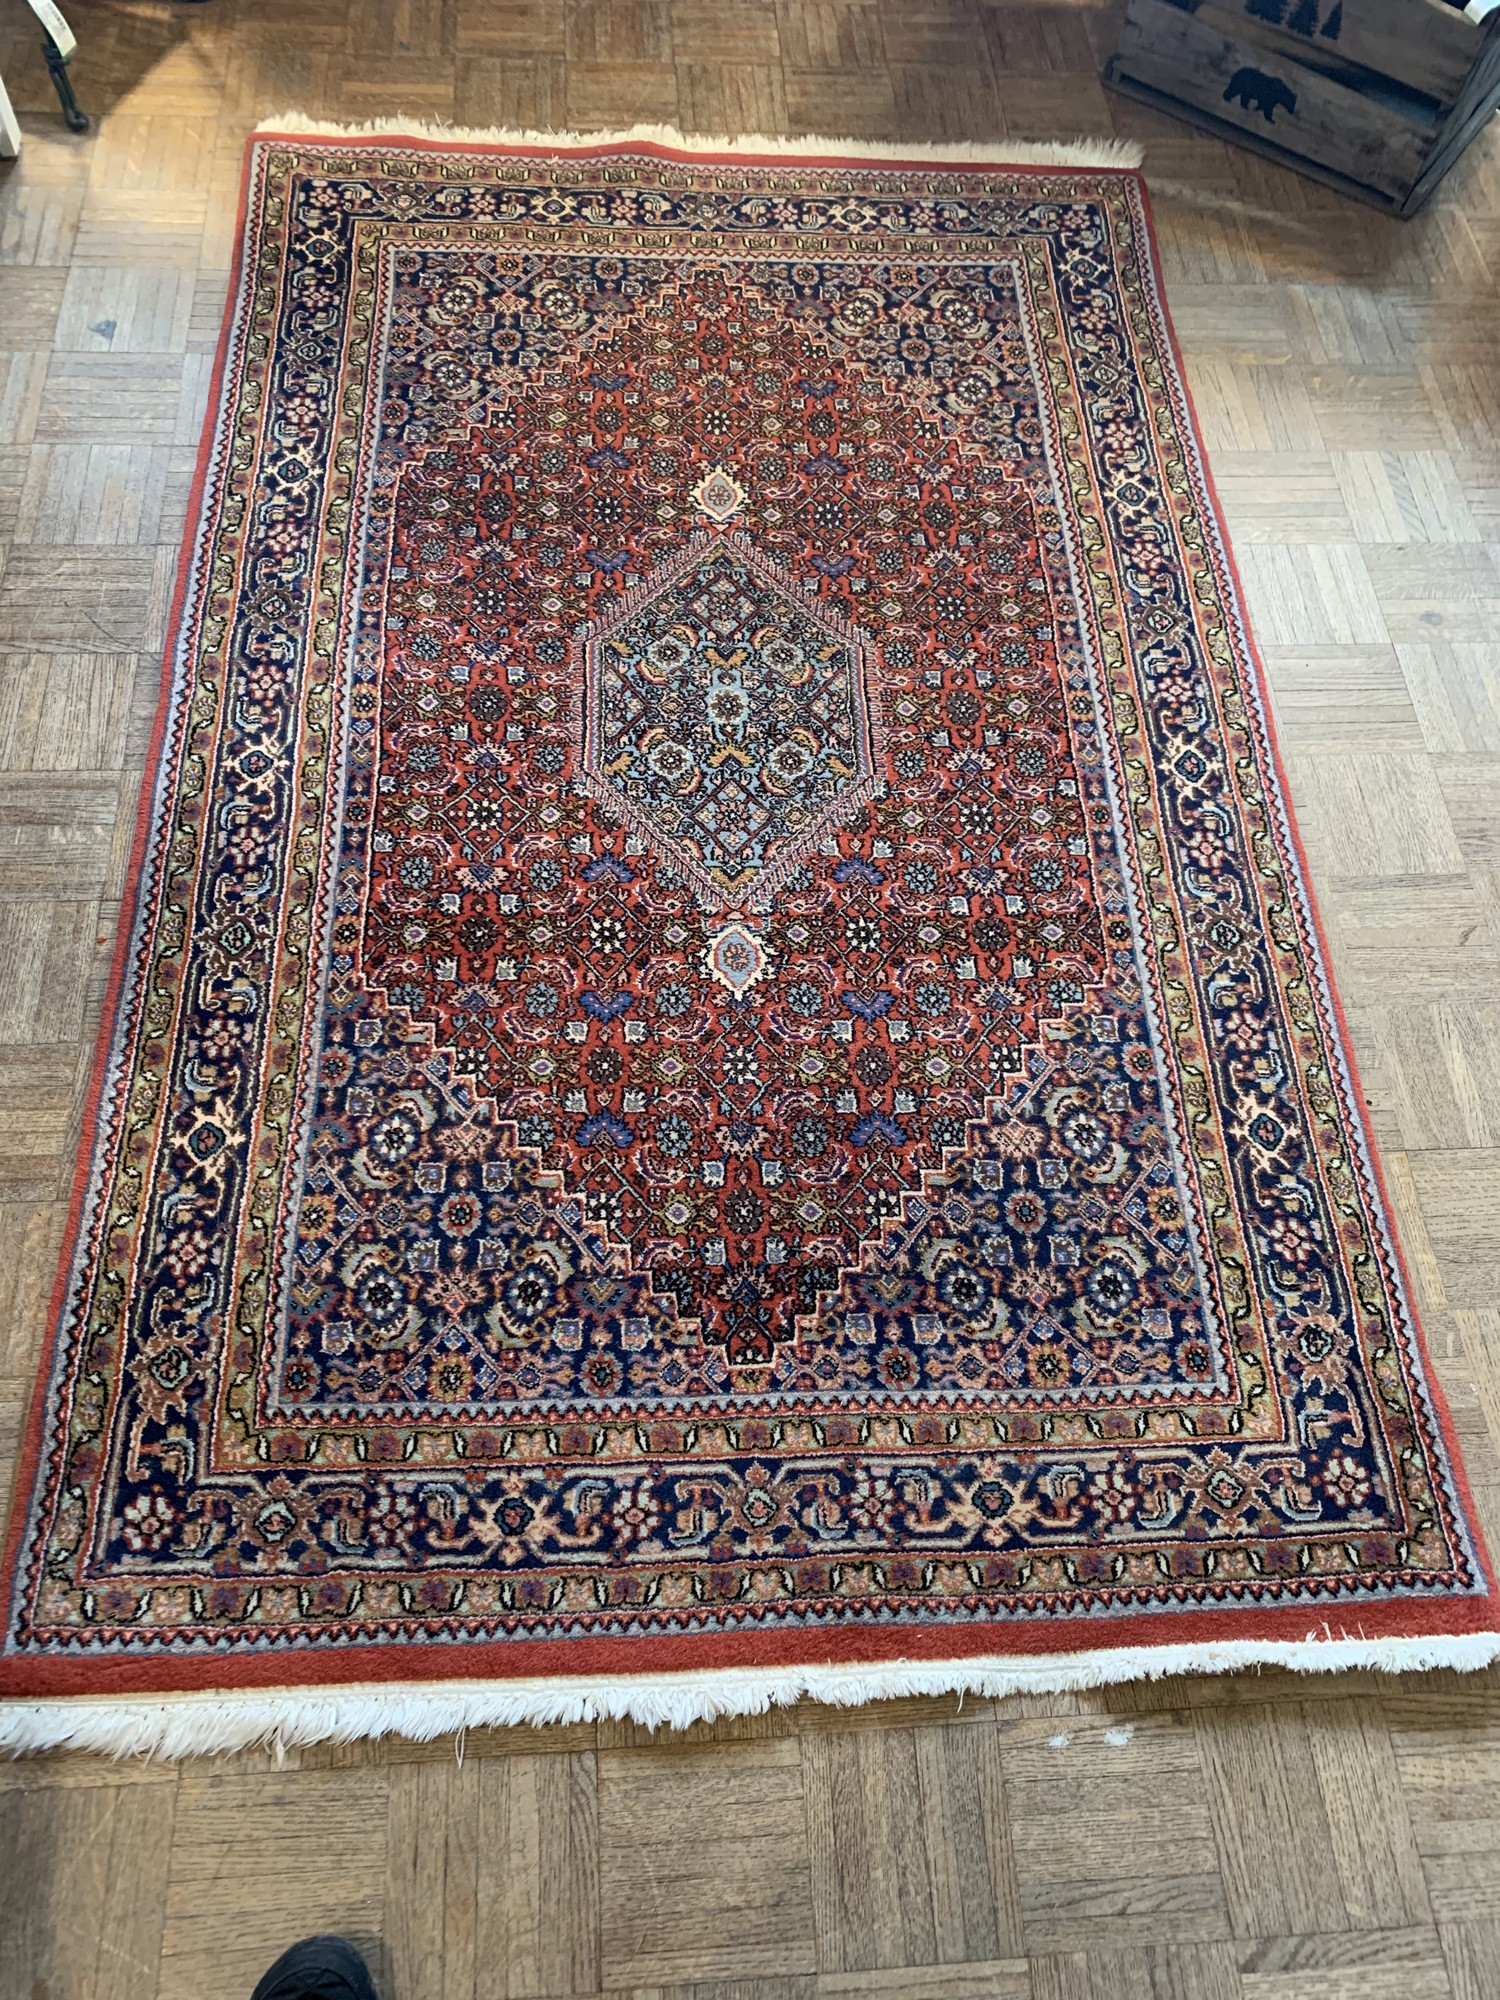 "Bidjar Oriental Rug<br /> Size: 3'10"" x 6'2""<br /> Purchased from Jacobsons in Syracuse, this Persian rug was made in Western Iran.  The high knot density makes it robust and dirt resistant.<br /> Valued at $1,800 this is a great buy at $650"